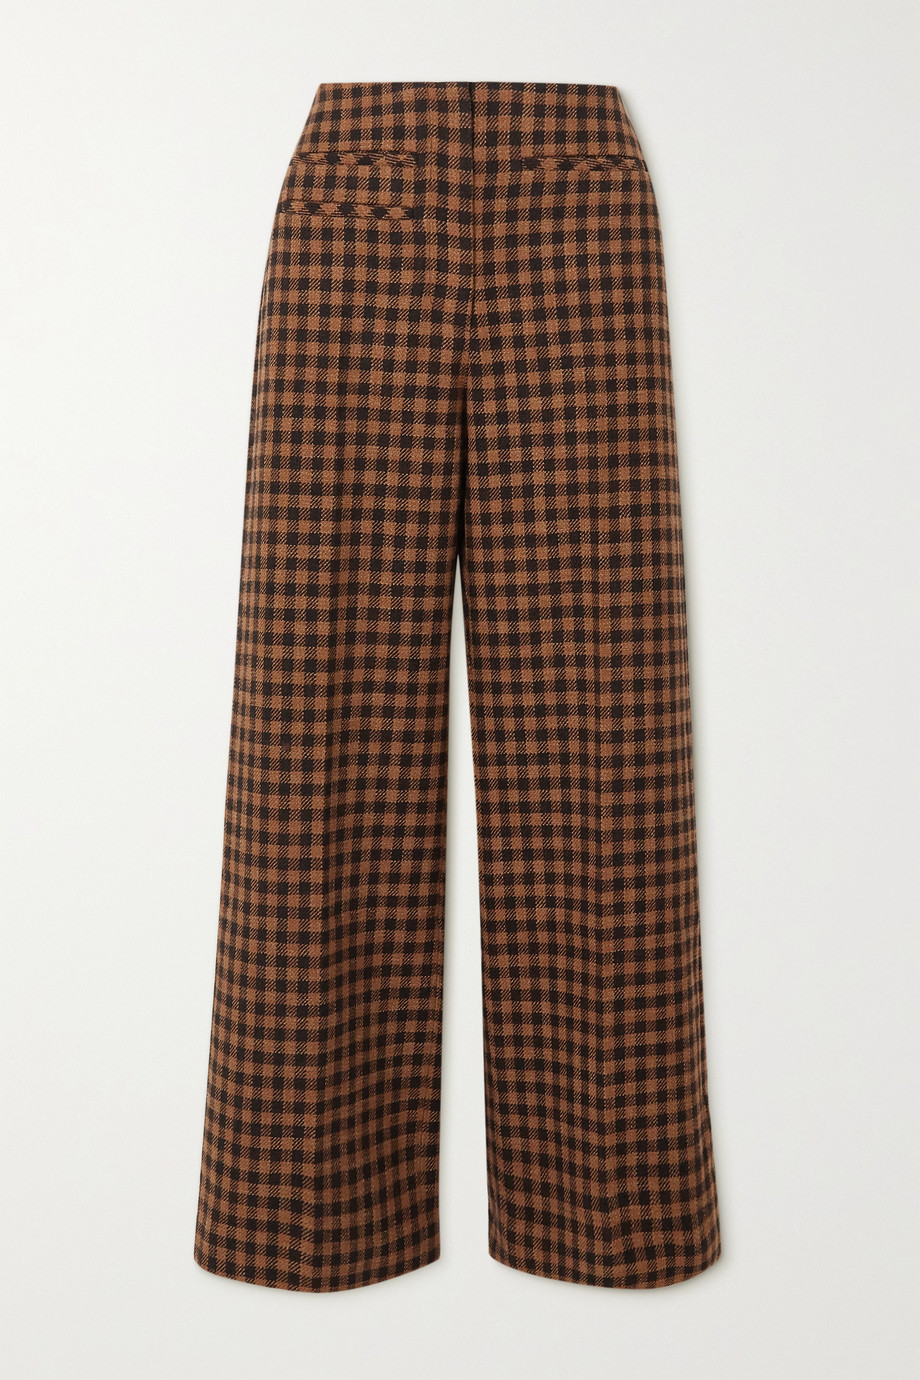 REJINA PYO Lexi checked wool and cotton-blend wide-leg pants